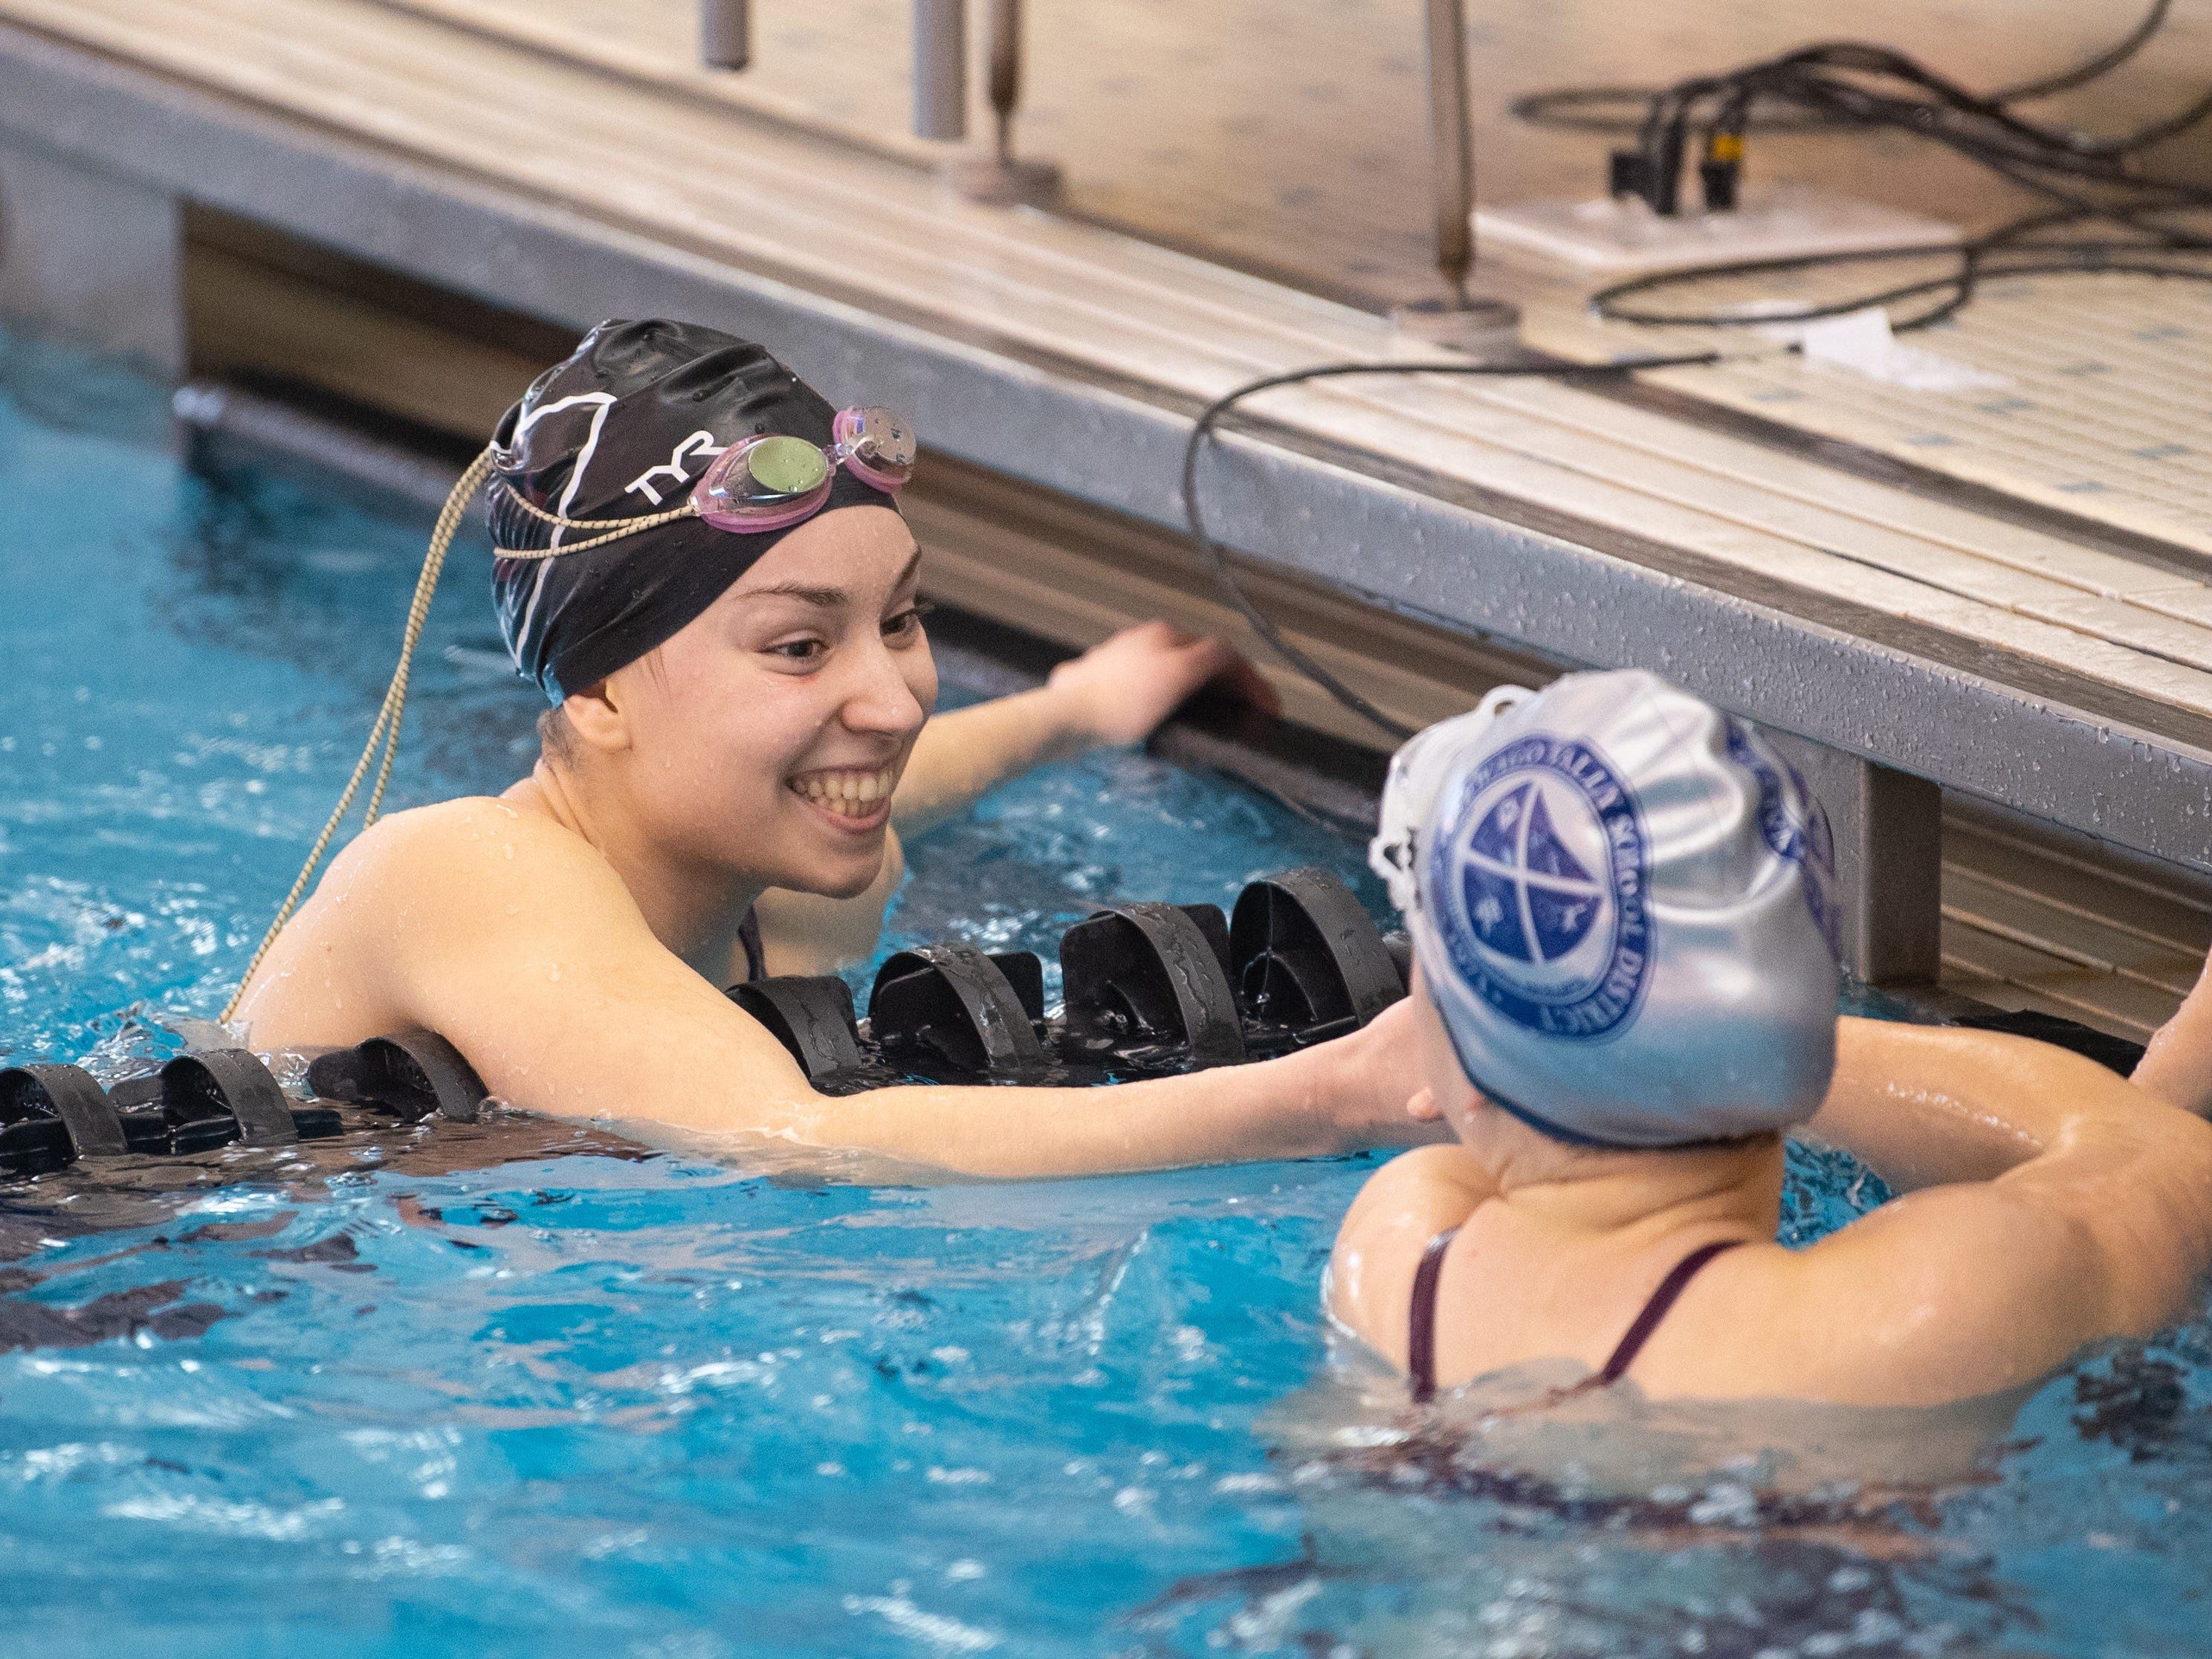 Gettysburg's Morgan Newell and New Oxford's Courtney Smith thank each other for a good race at the 2019 YAIAA Swimming and Diving Championships at Central York High School, February 9, 2019.